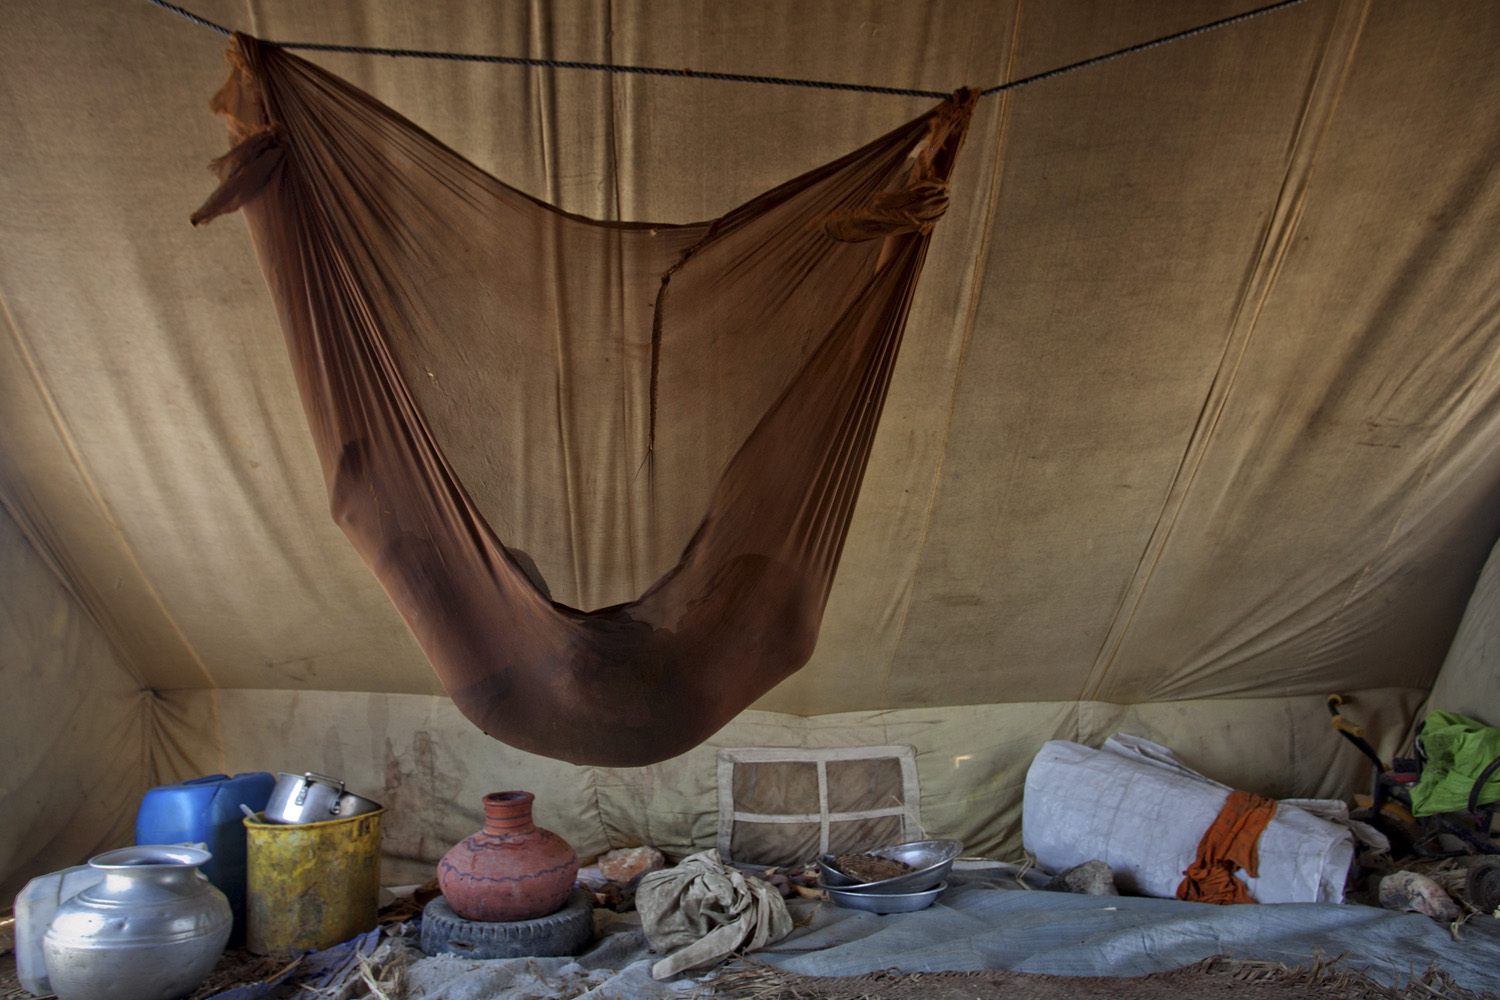 July 31, 2011. One and a half-year-old Muskan, internally displaced by the 2010 Pakistan floods, sleeps in a hammock over cooking utensils inside her family's tent set up along a roadside in Jamshoro, in Sindh province.